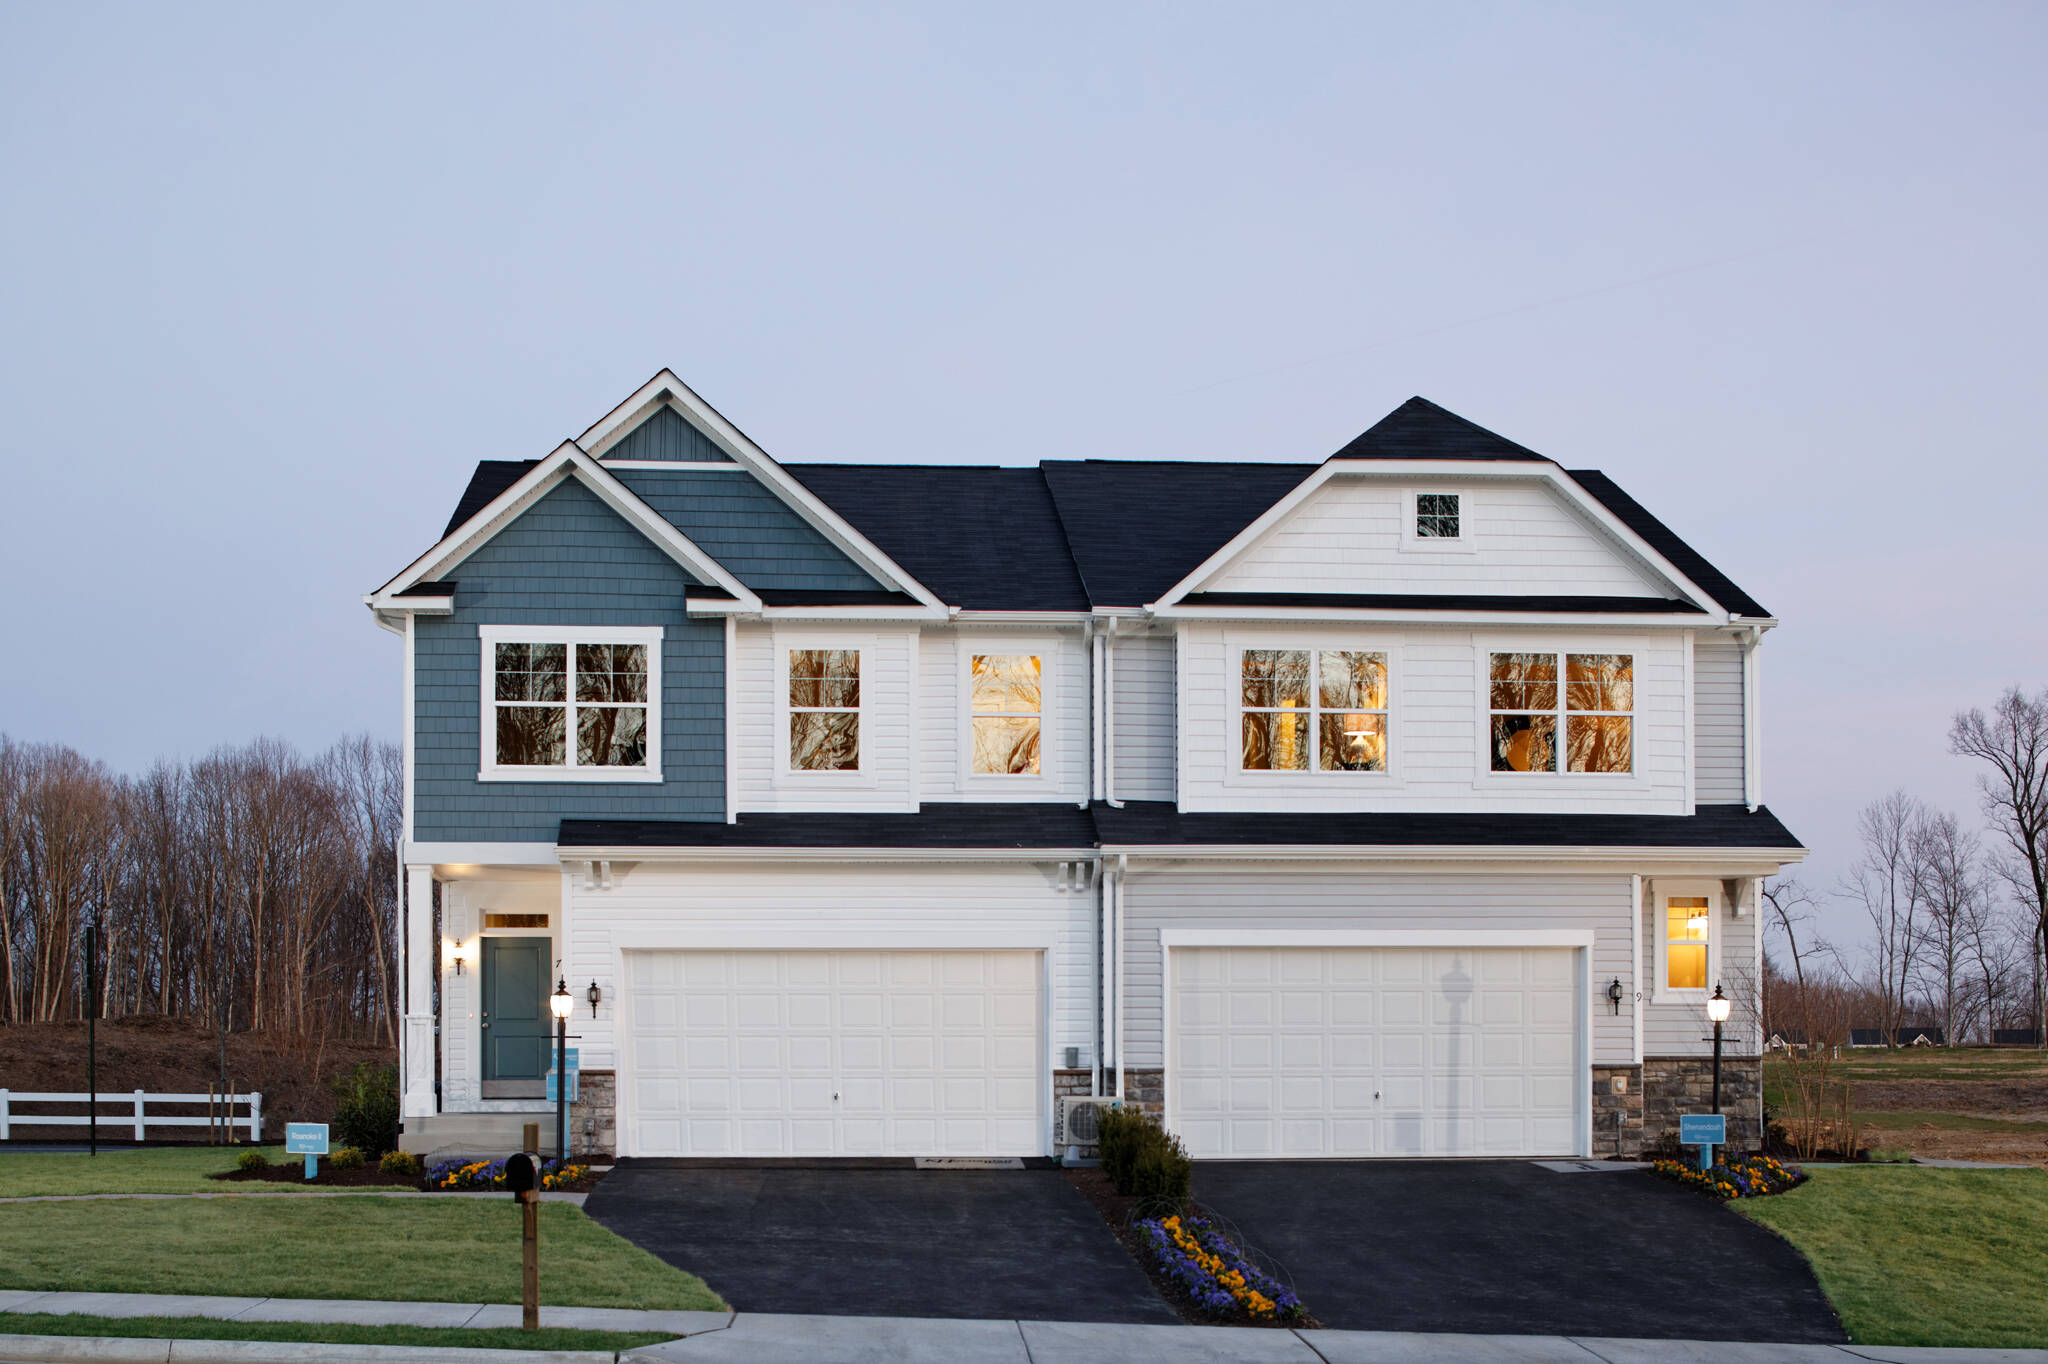 roanoke II shenandoah new homes at villas at wellspring in virginia